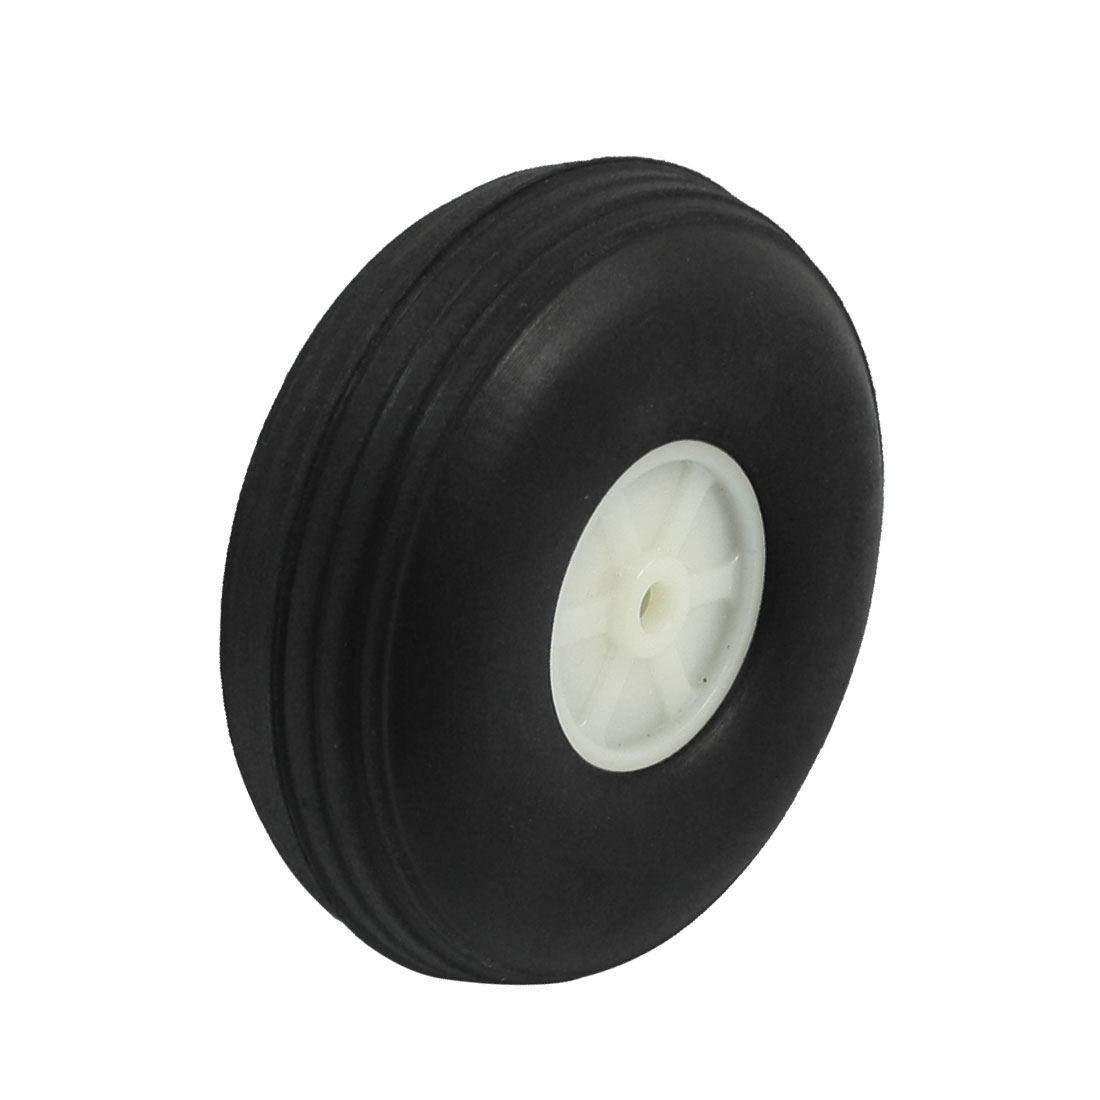 "DIY RC Airplane Plastic Hub 2.5"" Diameter Foam Tire PU Wheel"